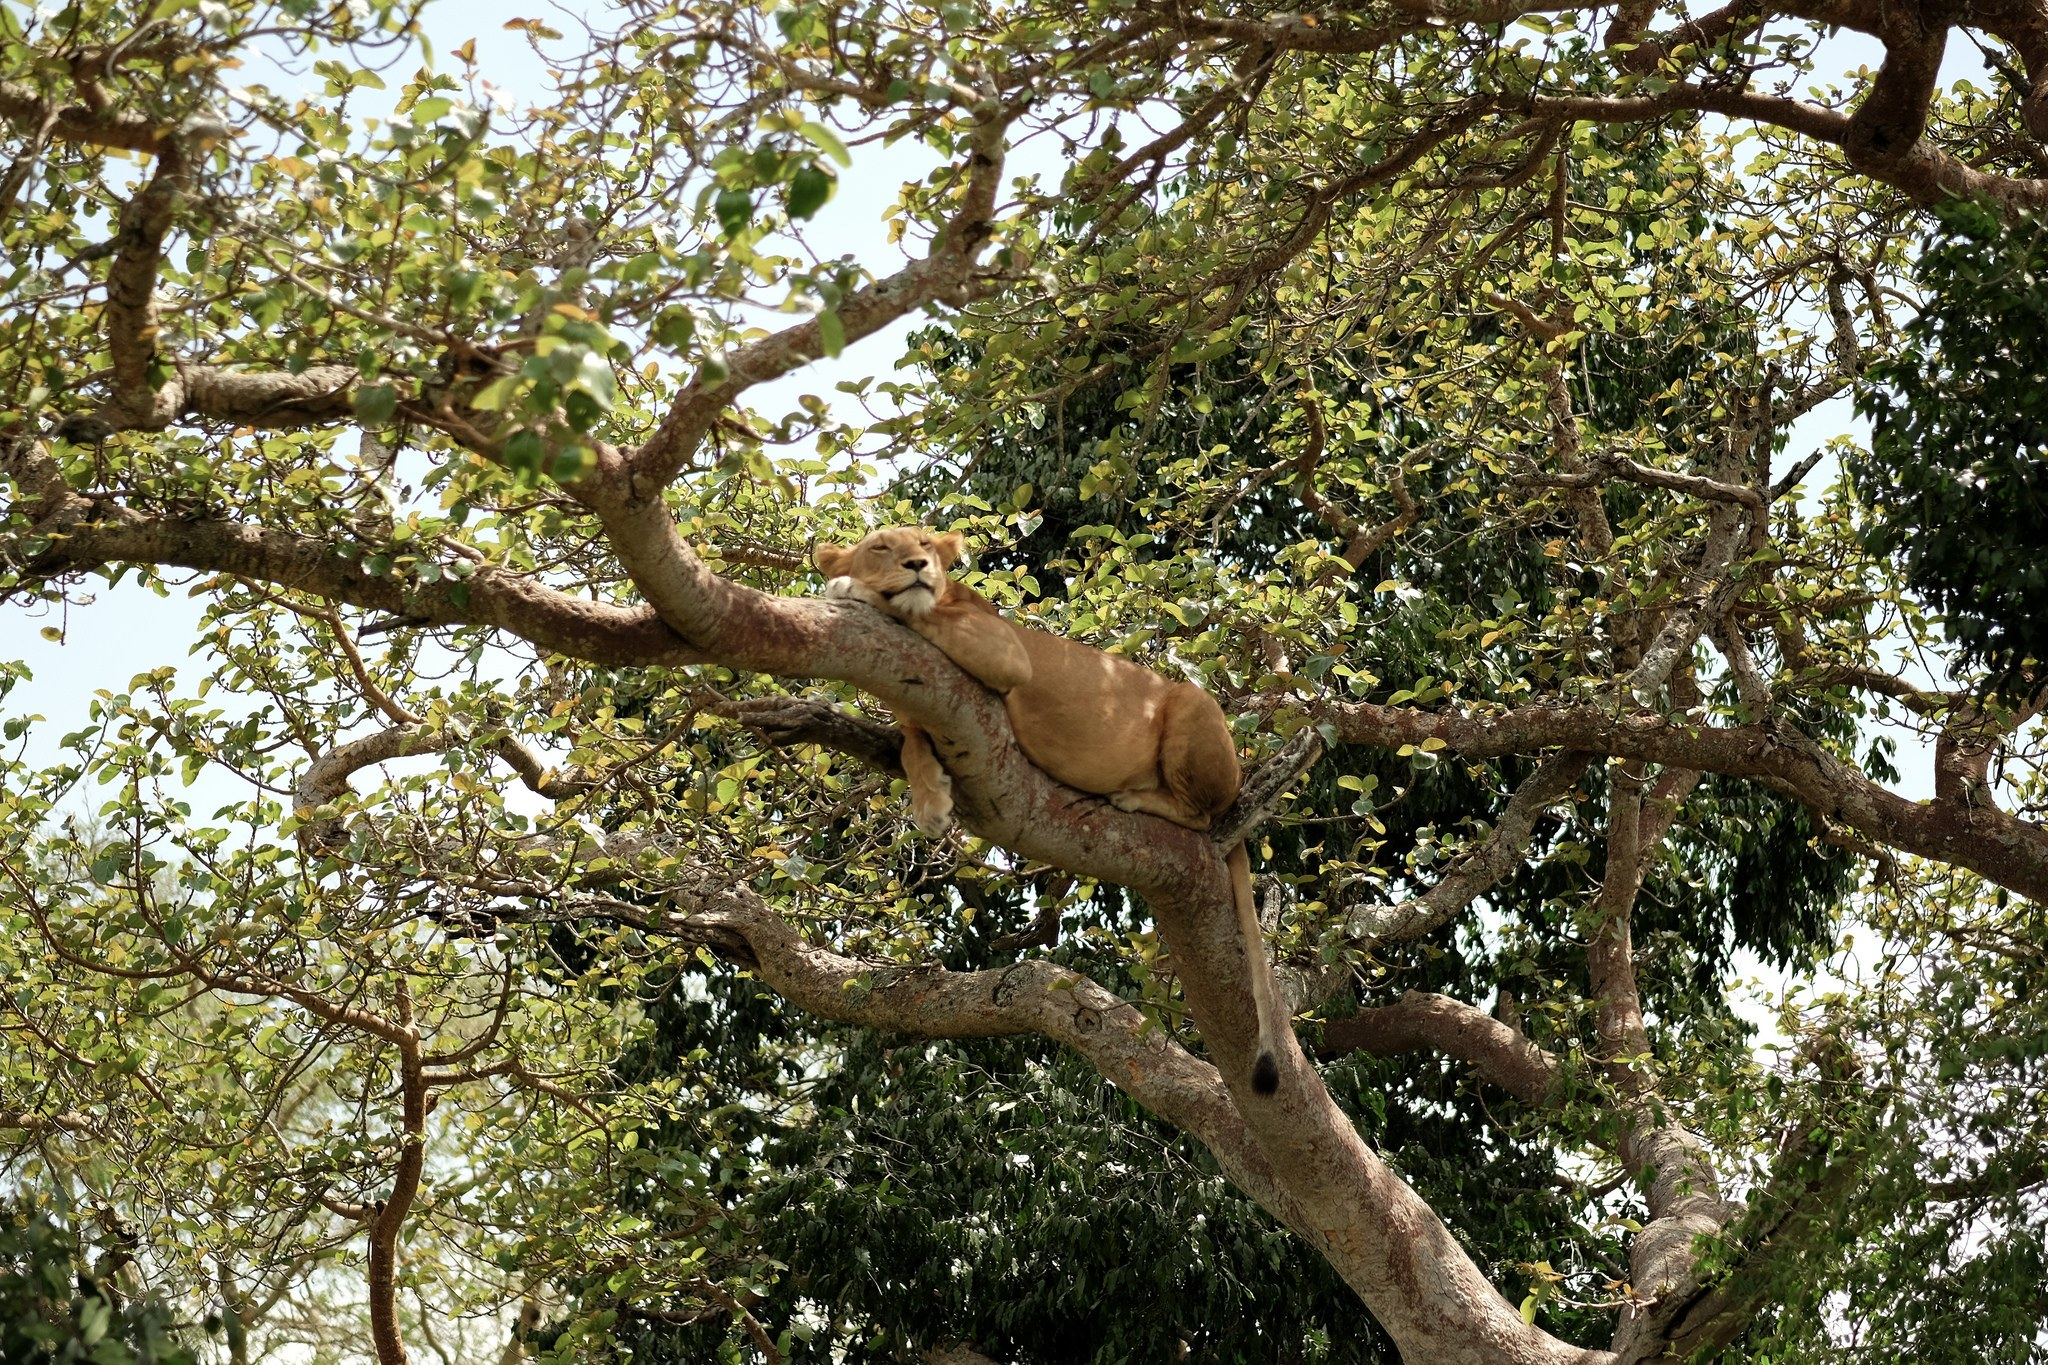 A lion in Queen Elizabeth National Park - Uganda safaris